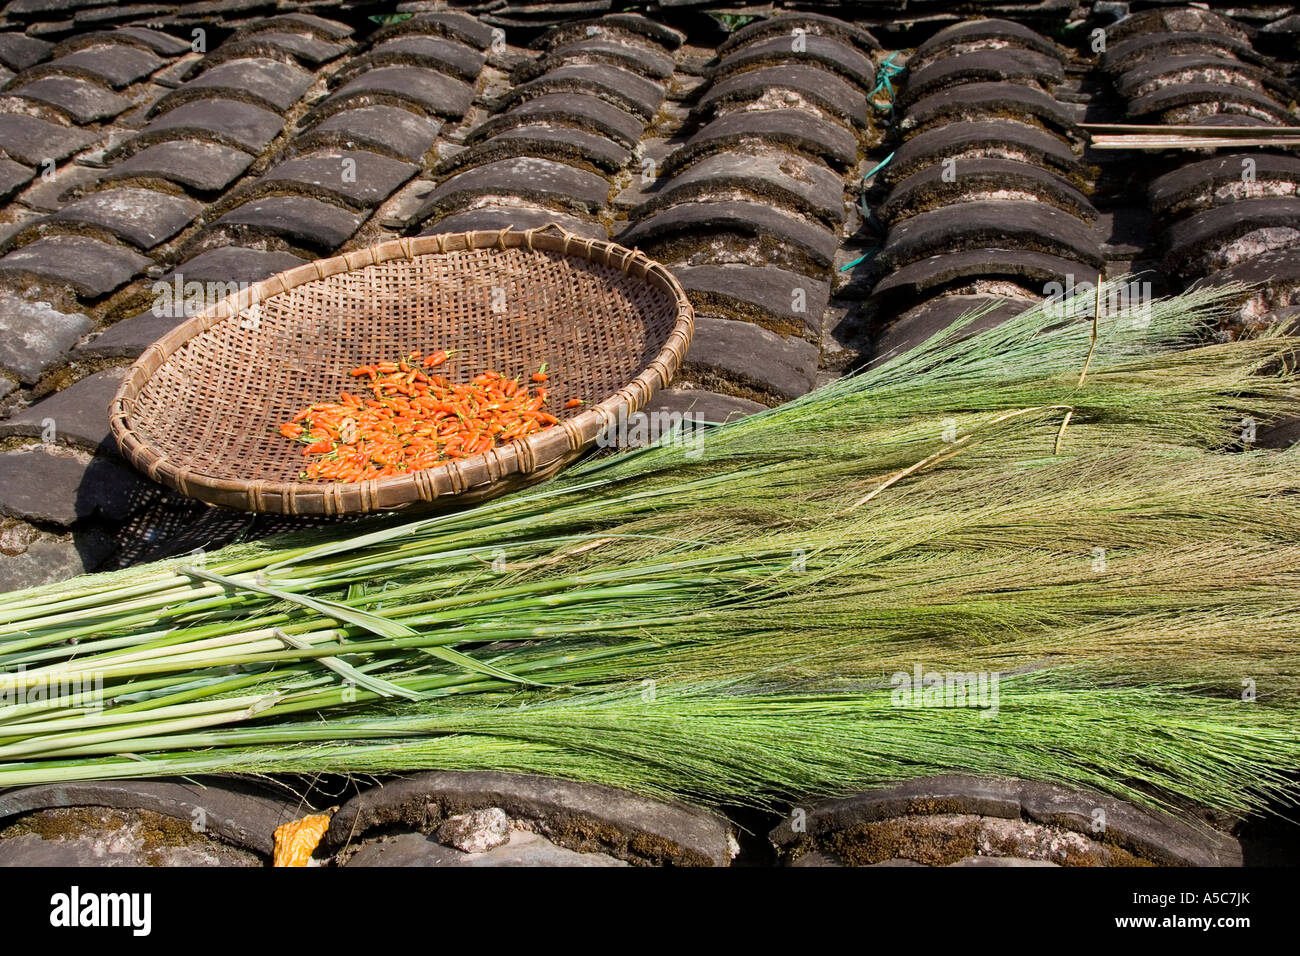 Chili and Cogon Grass for Brooms Drying on a Tile Roof Yaoqu China - Stock Image